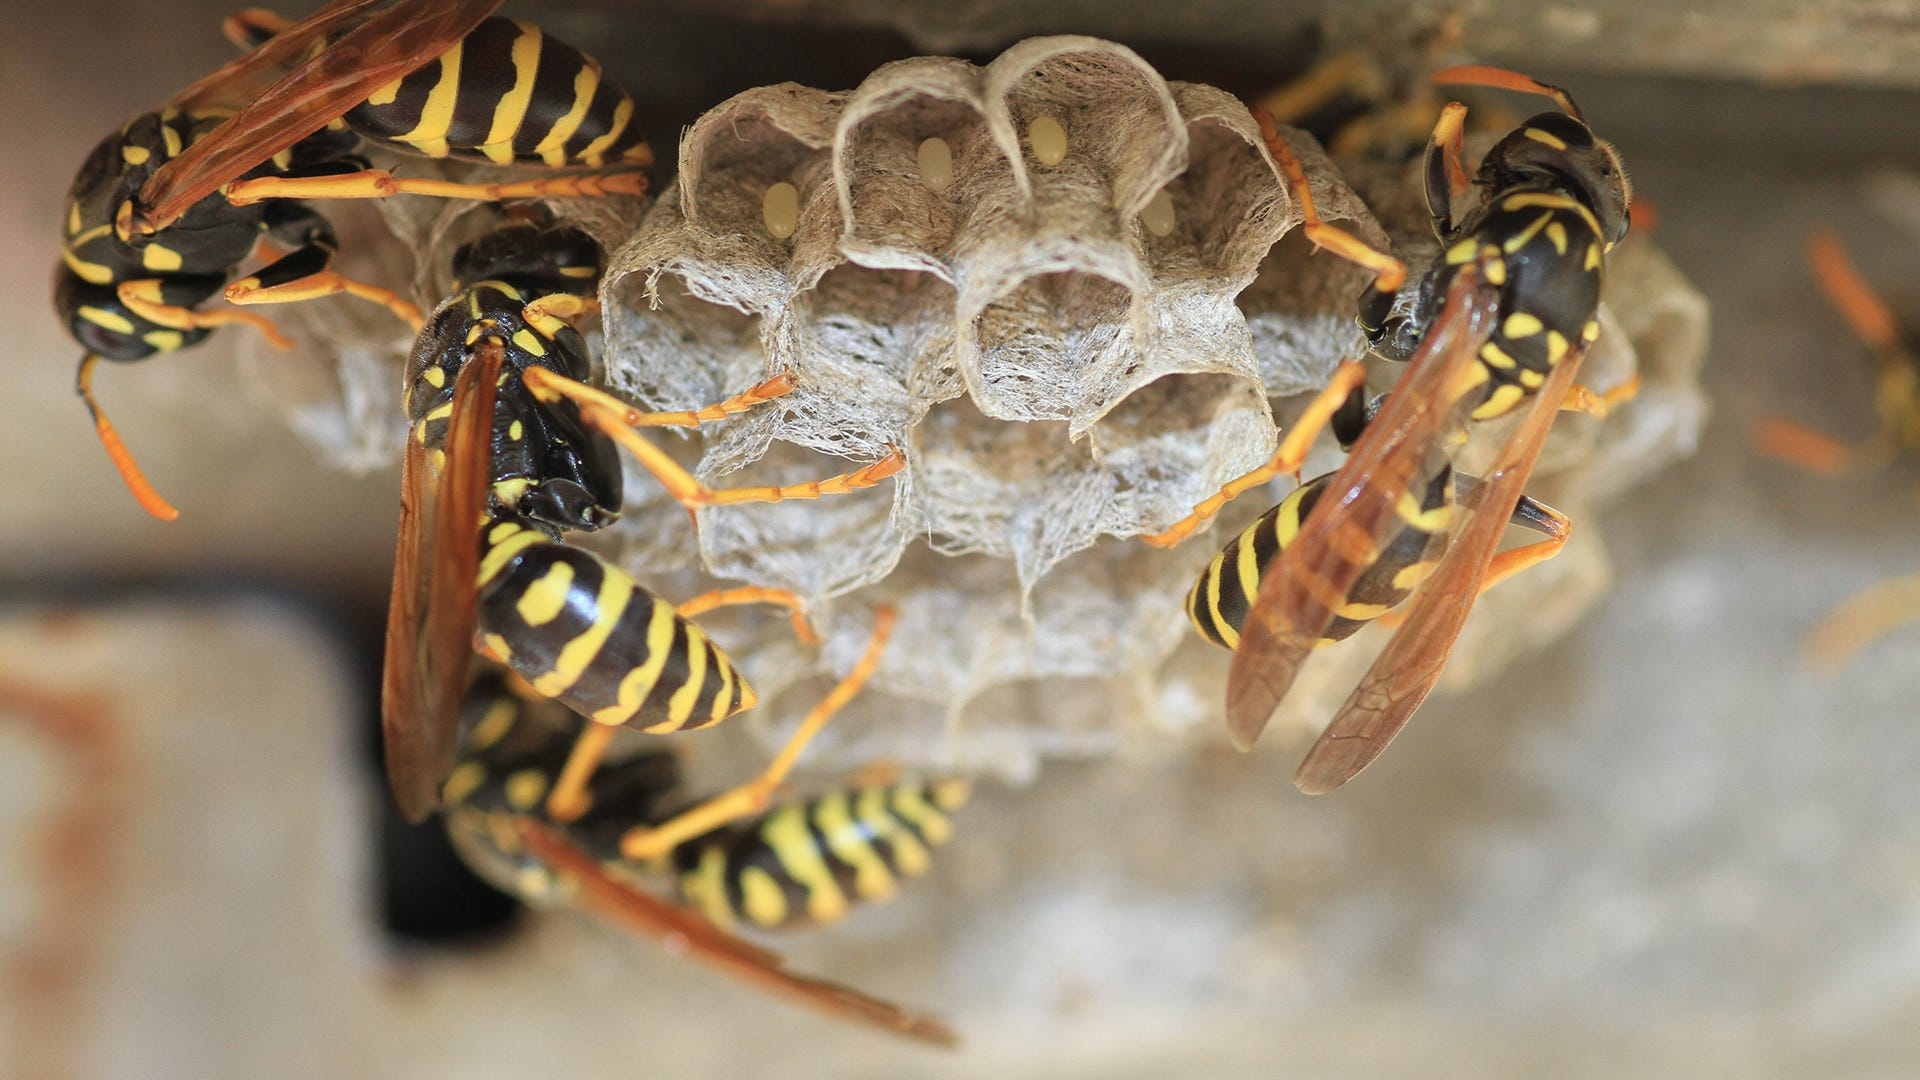 wasp on hive